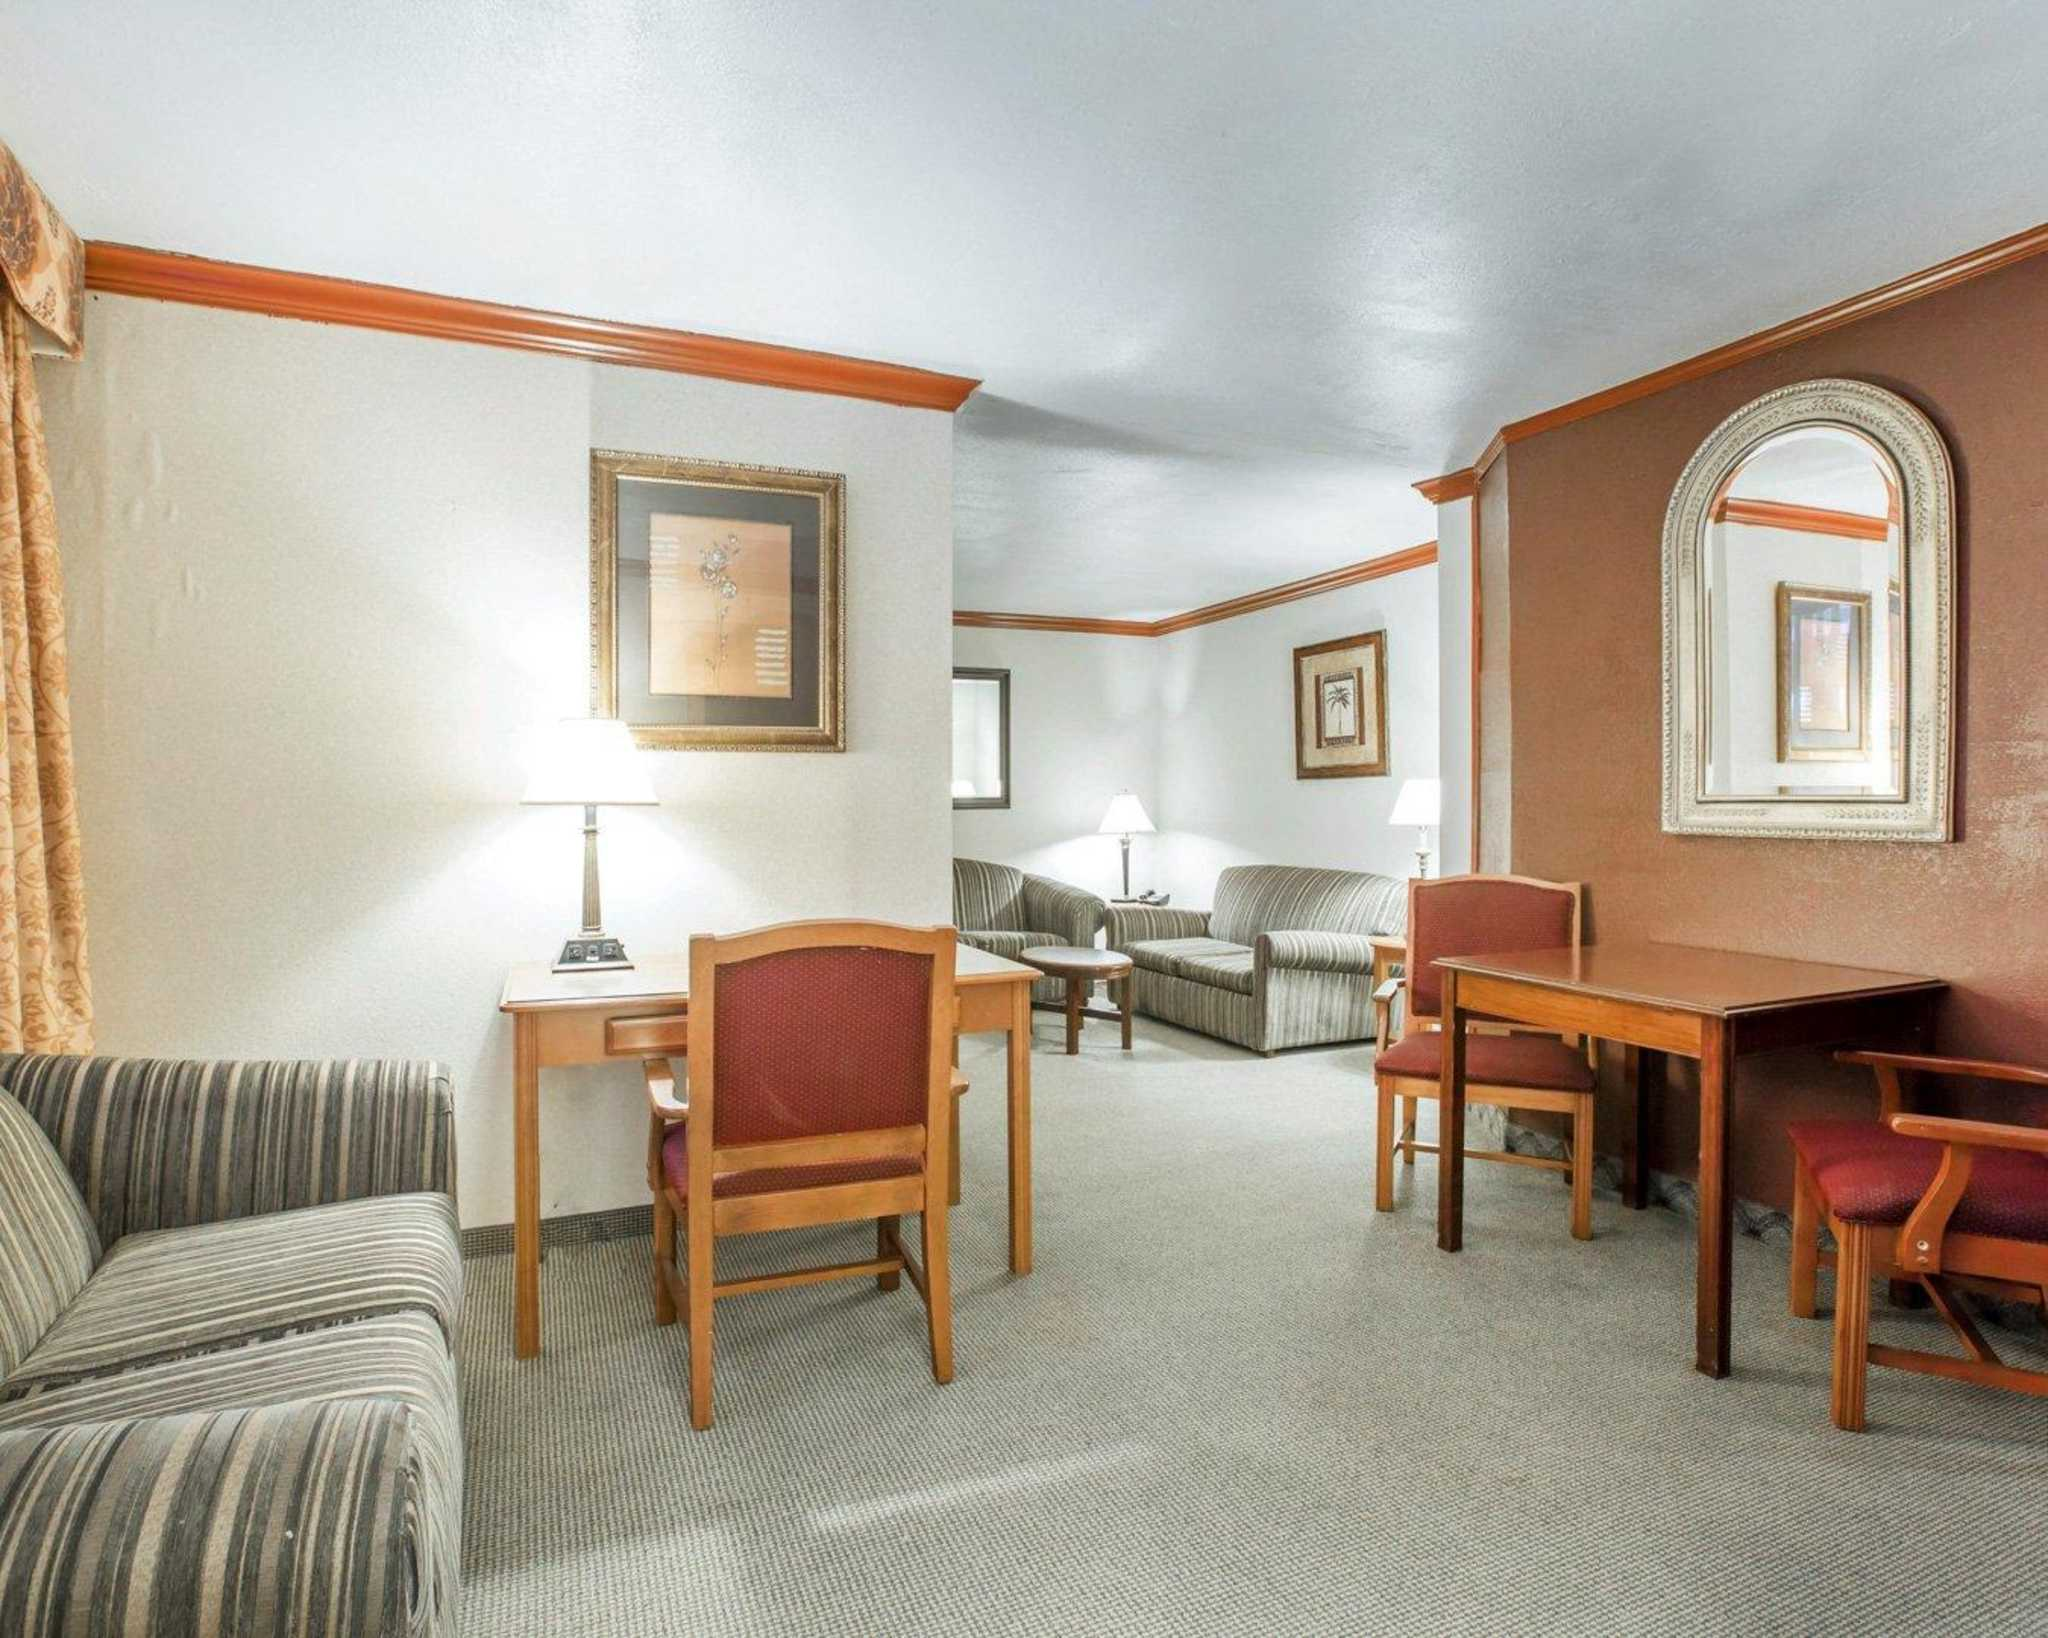 Clarion Inn Conference Center image 28